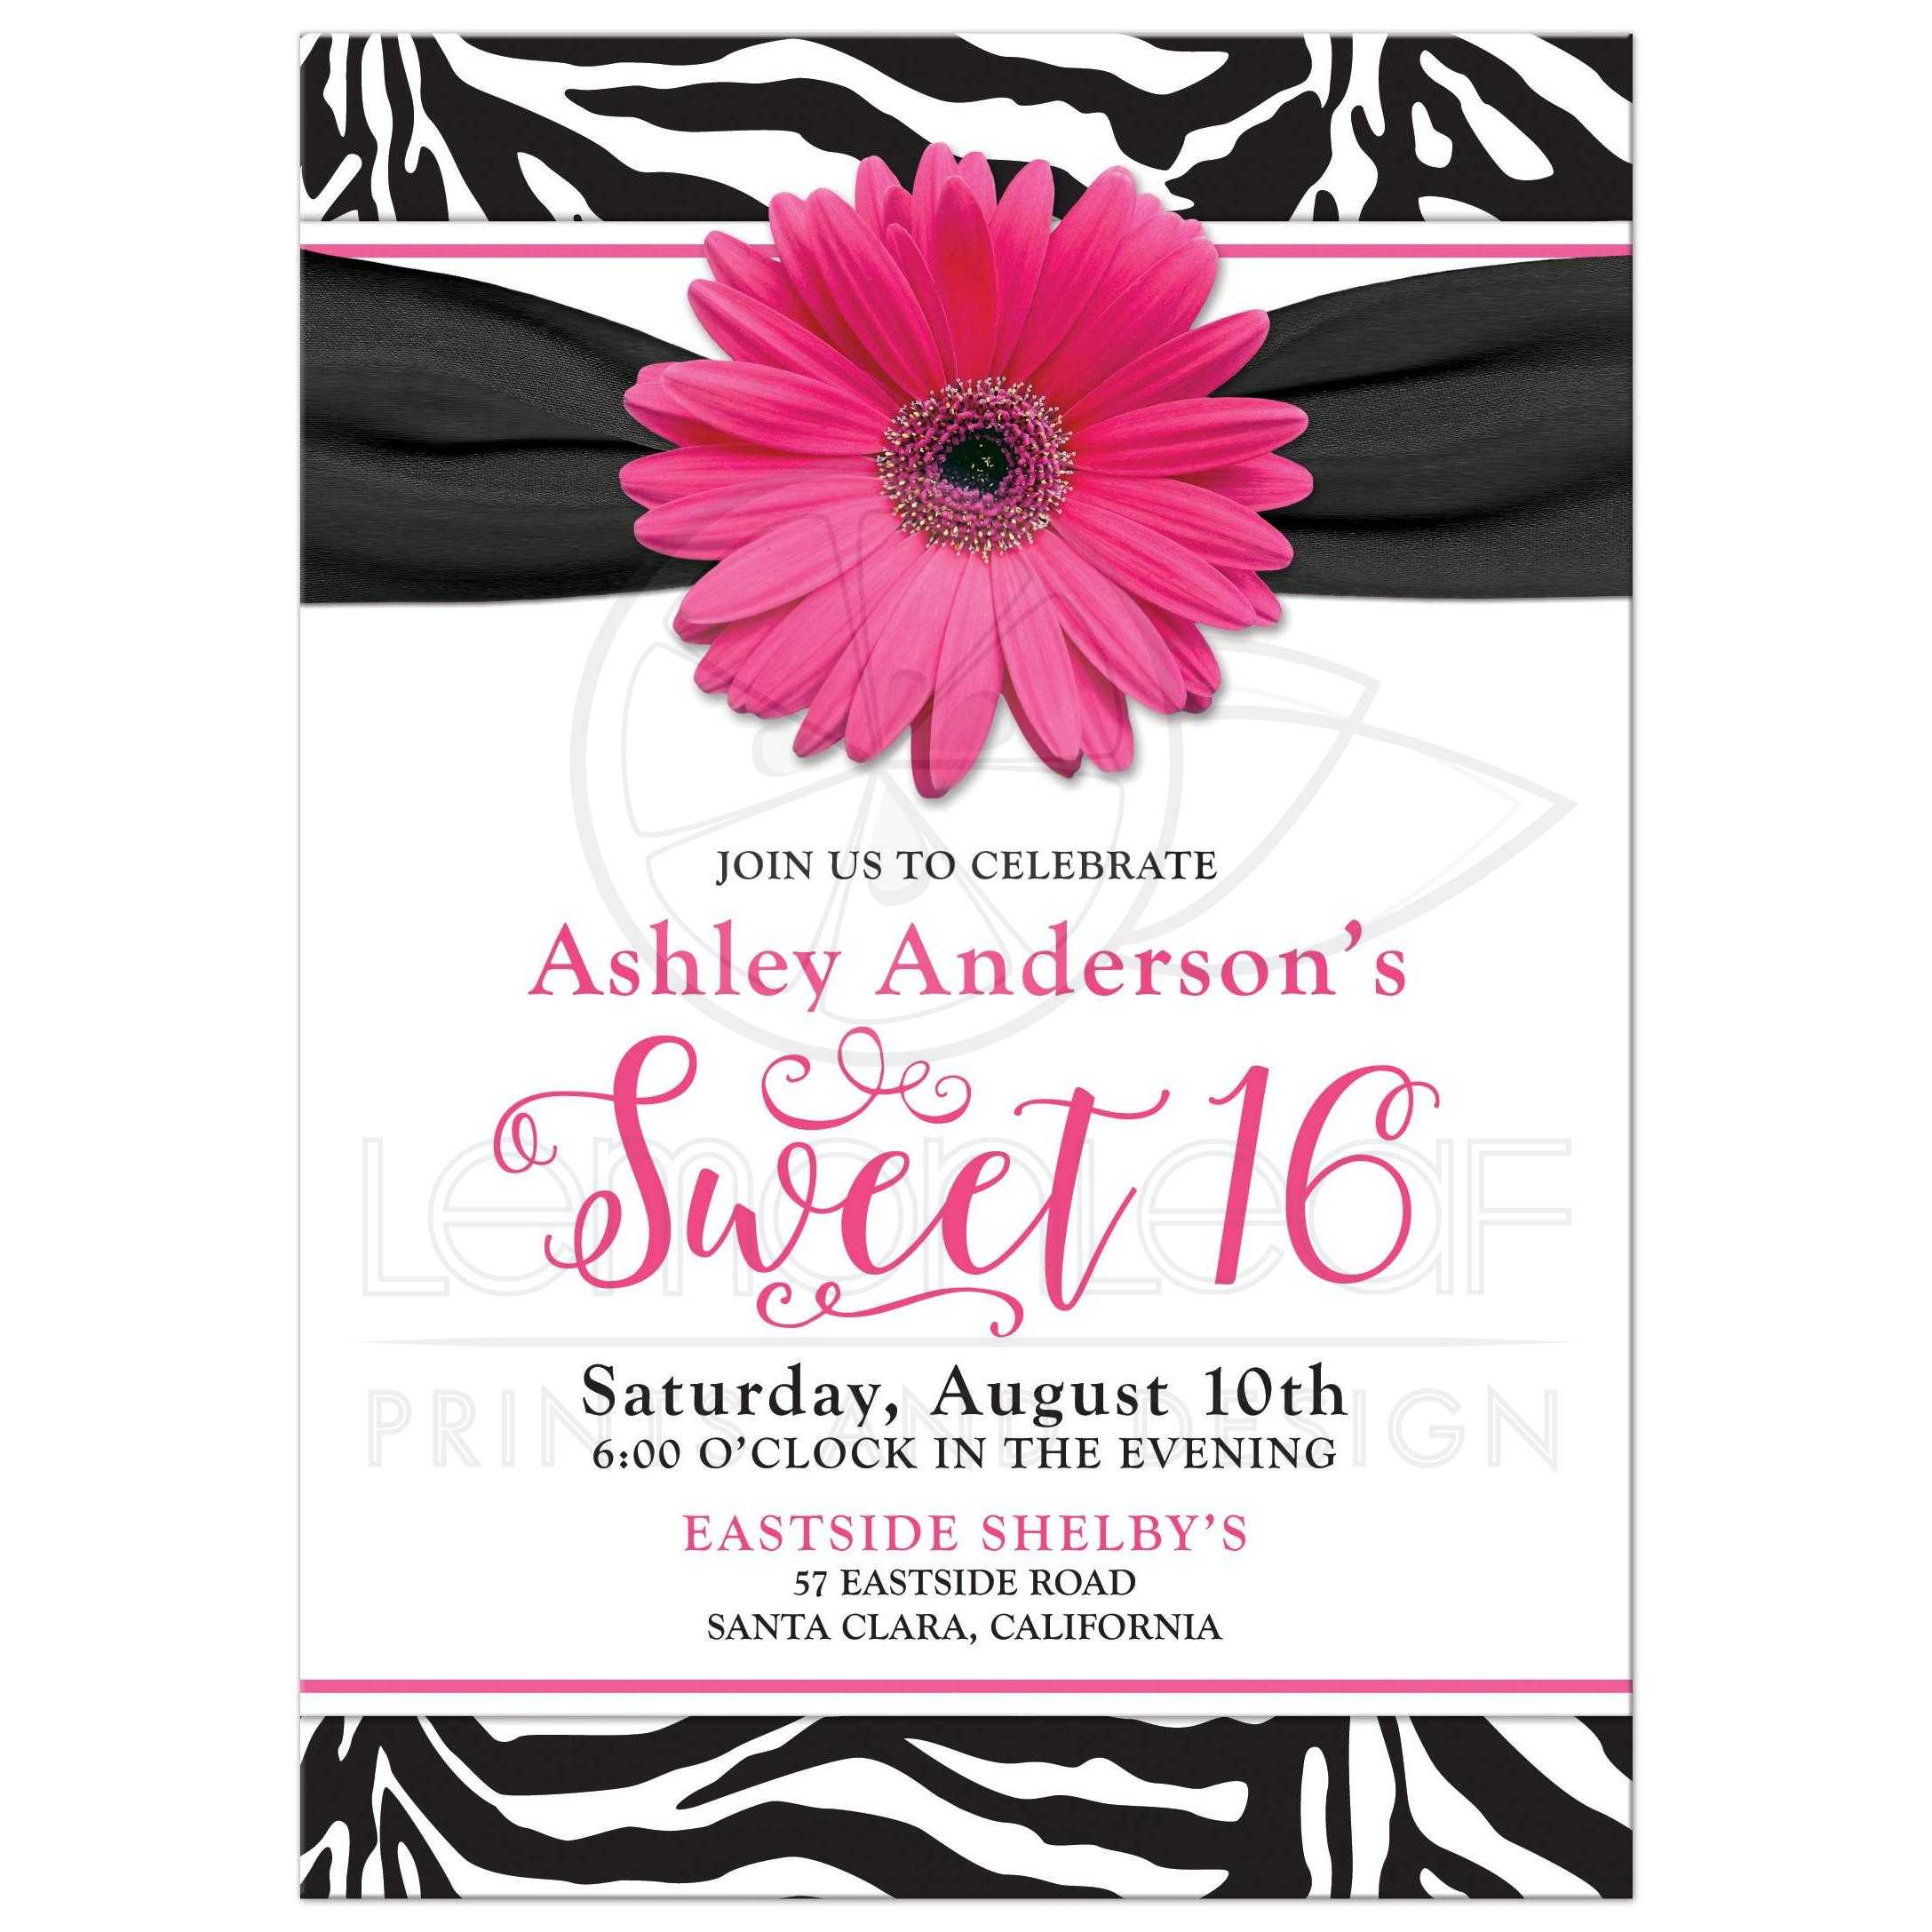 Chic Sweet 16 Birthday Invitation Hot Pink Daisy Black White Zebra